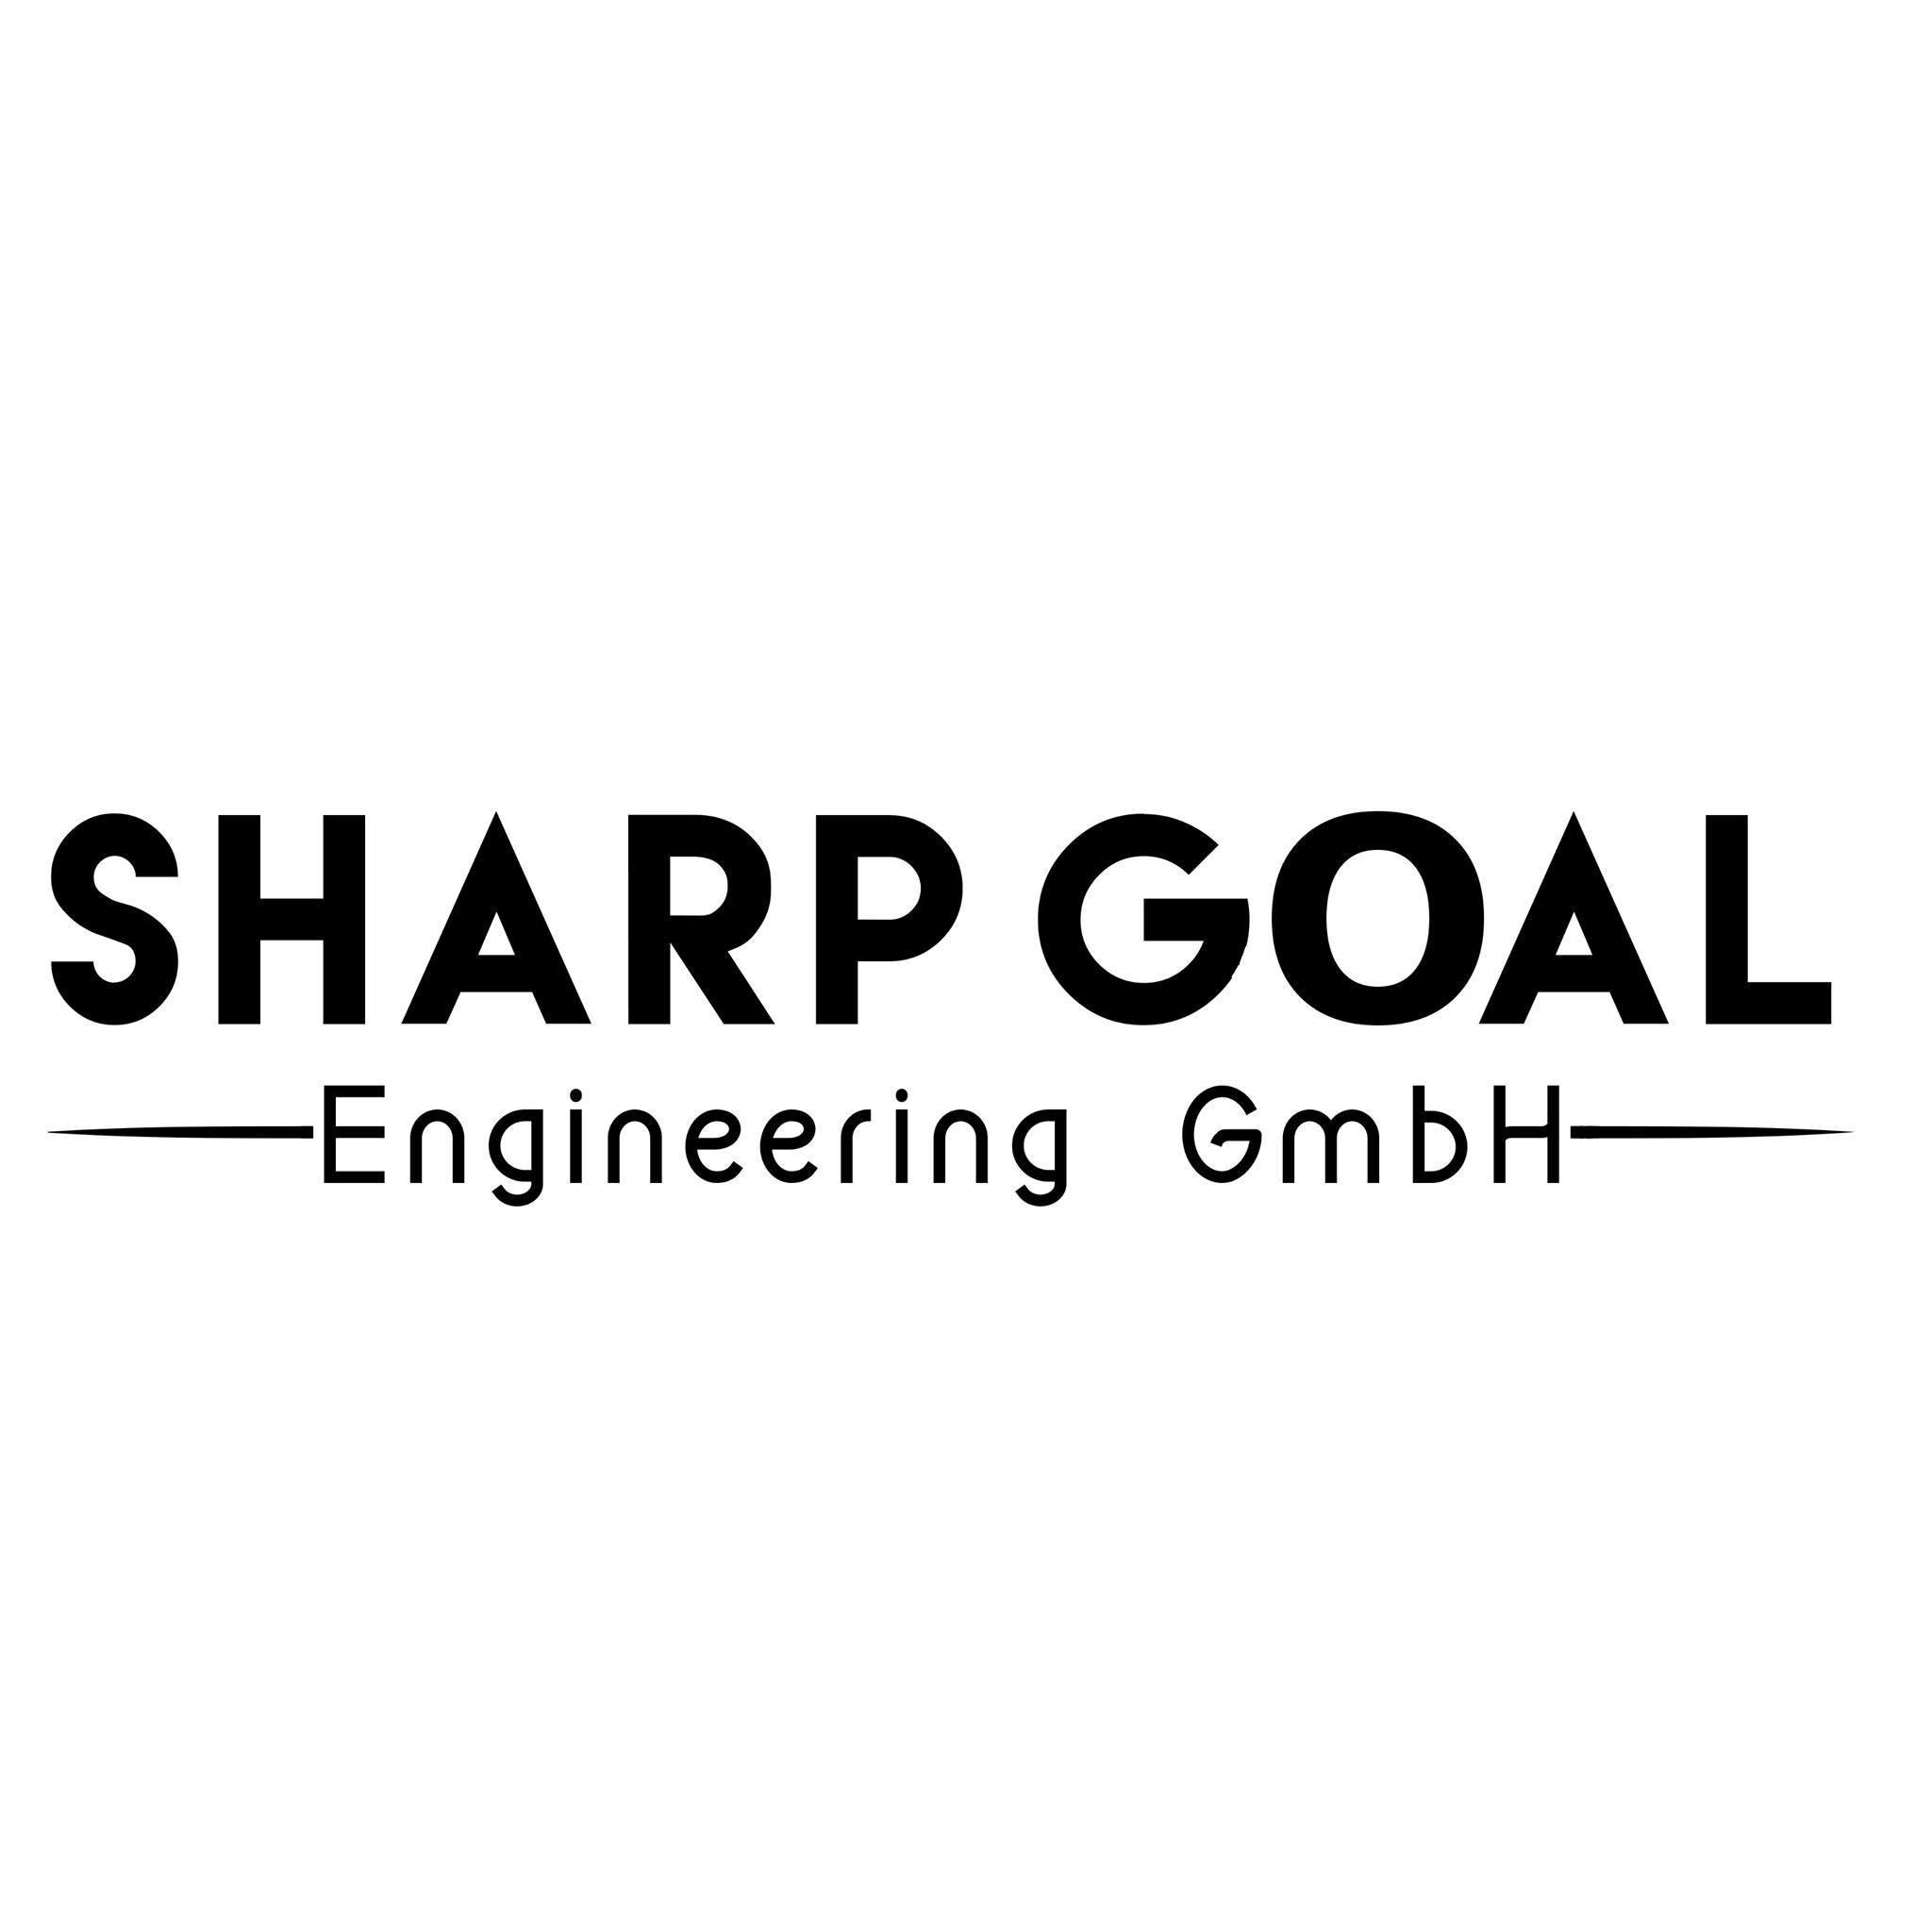 Sharp Goal Engineering GmbH